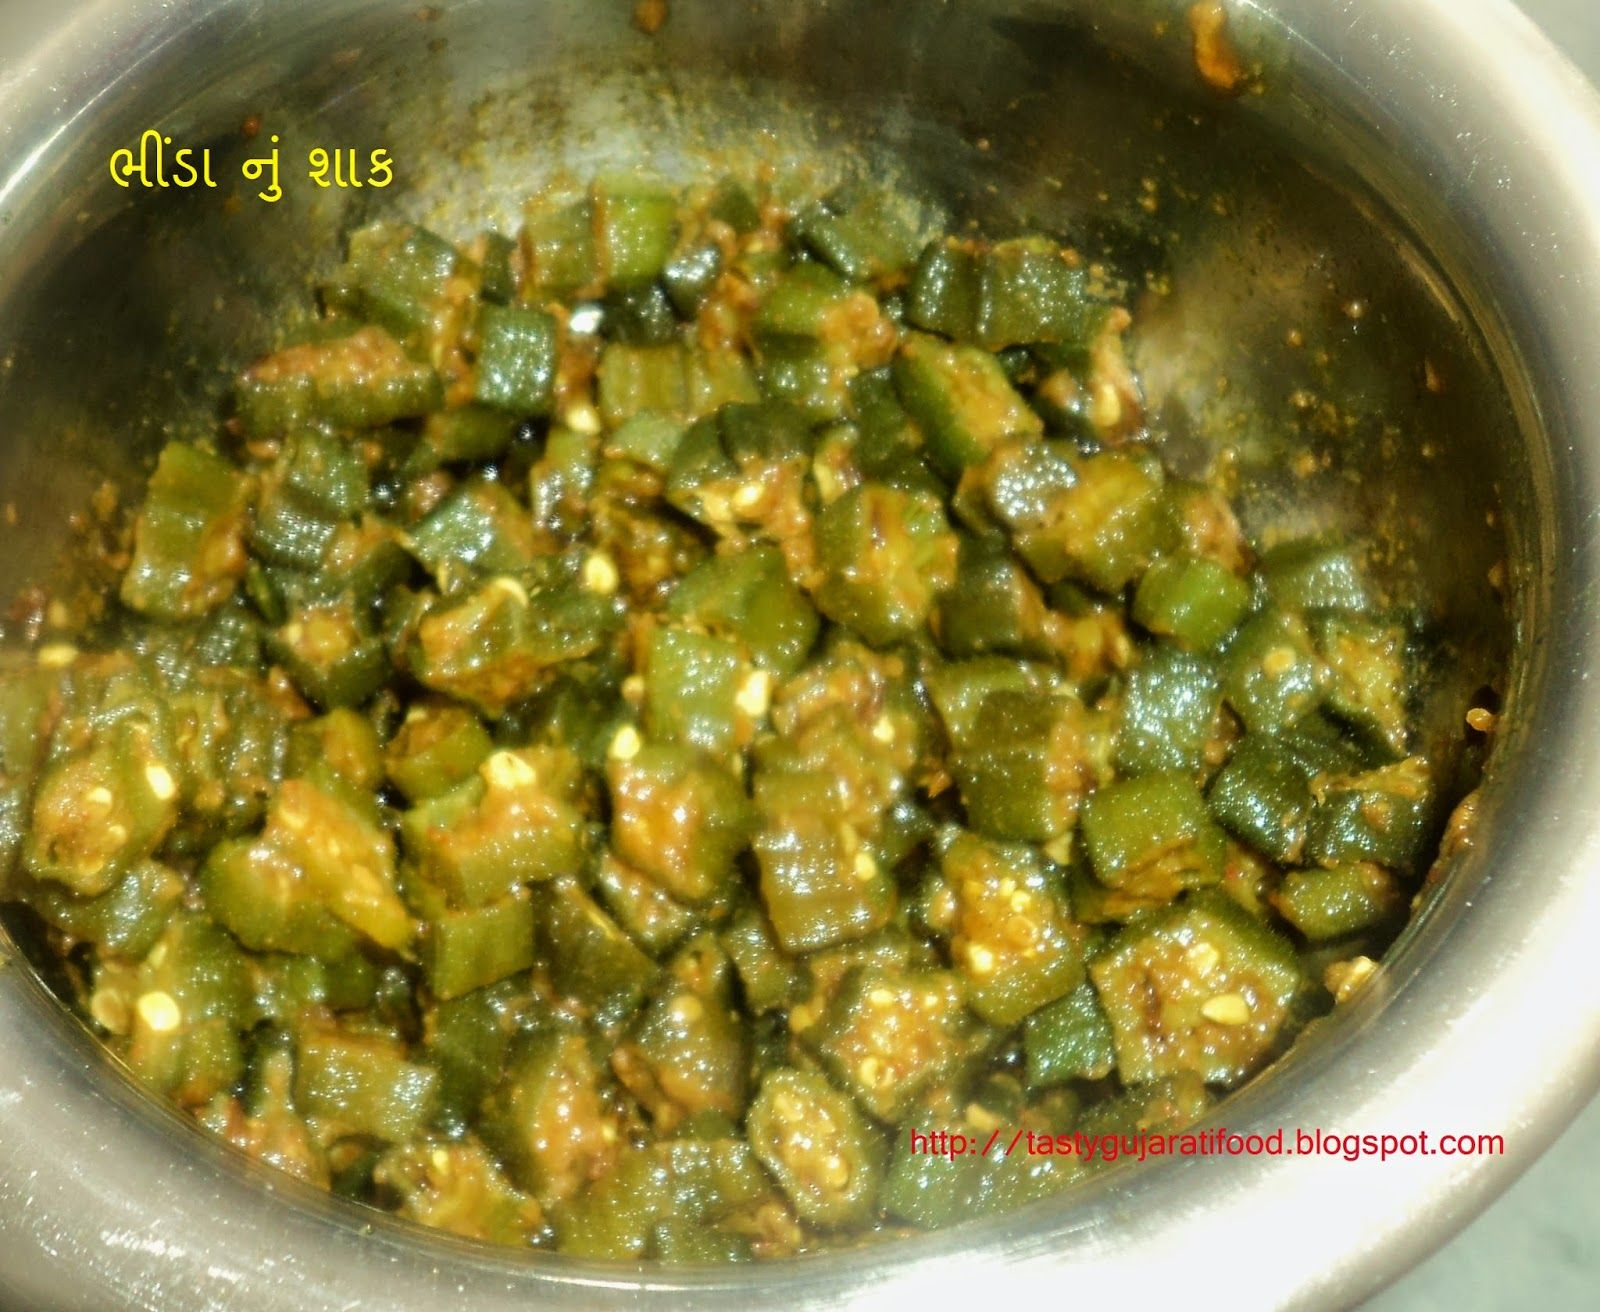 Delicious bhinda nu shaak recipe by tasty gujarati food recipes blog delicious bhinda nu shaak recipe by tasty gujarati food recipes blog read recipe and make forumfinder Images